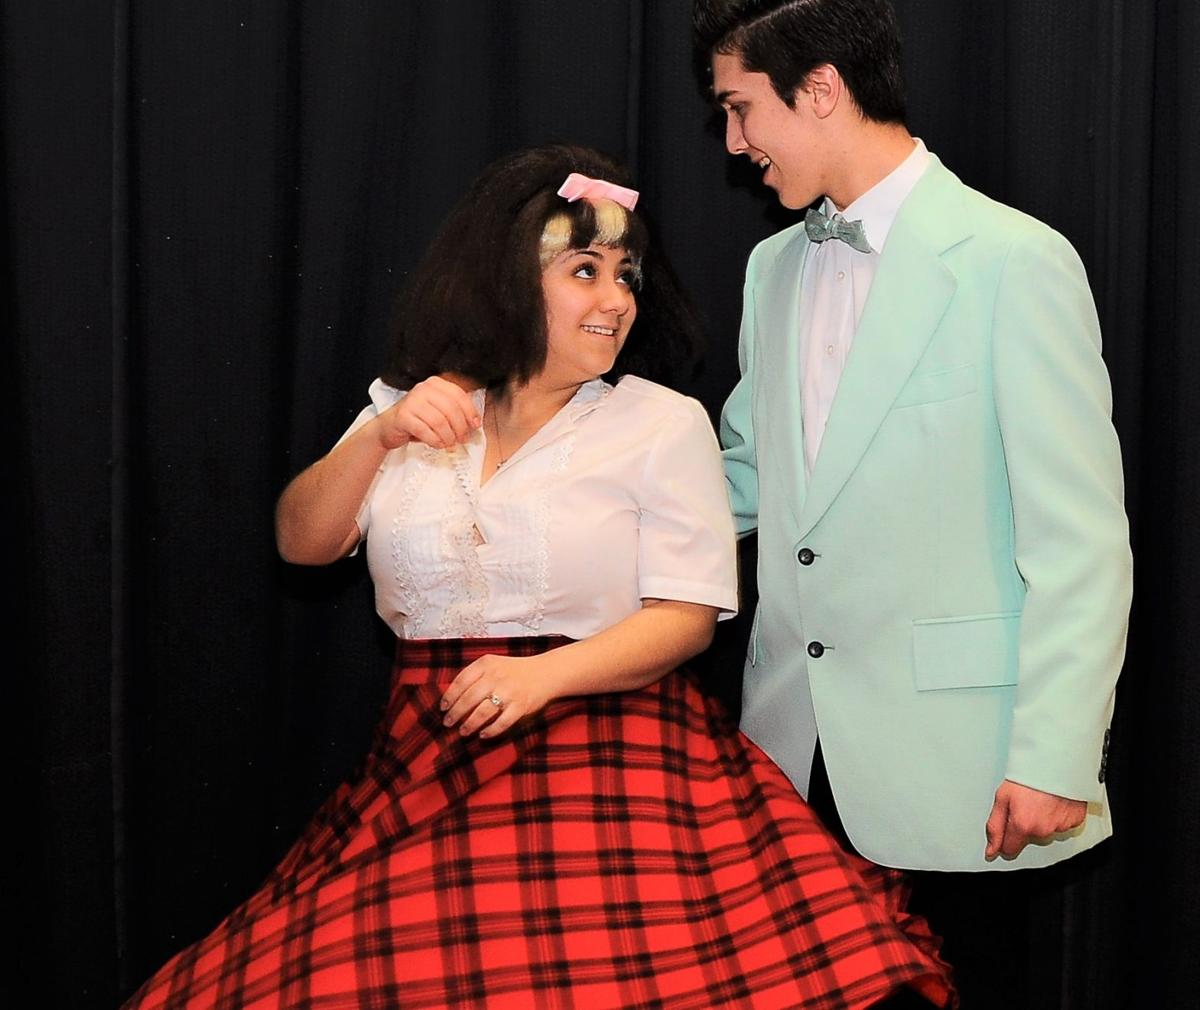 High School nets largest cast yet in 'Hairspray' production